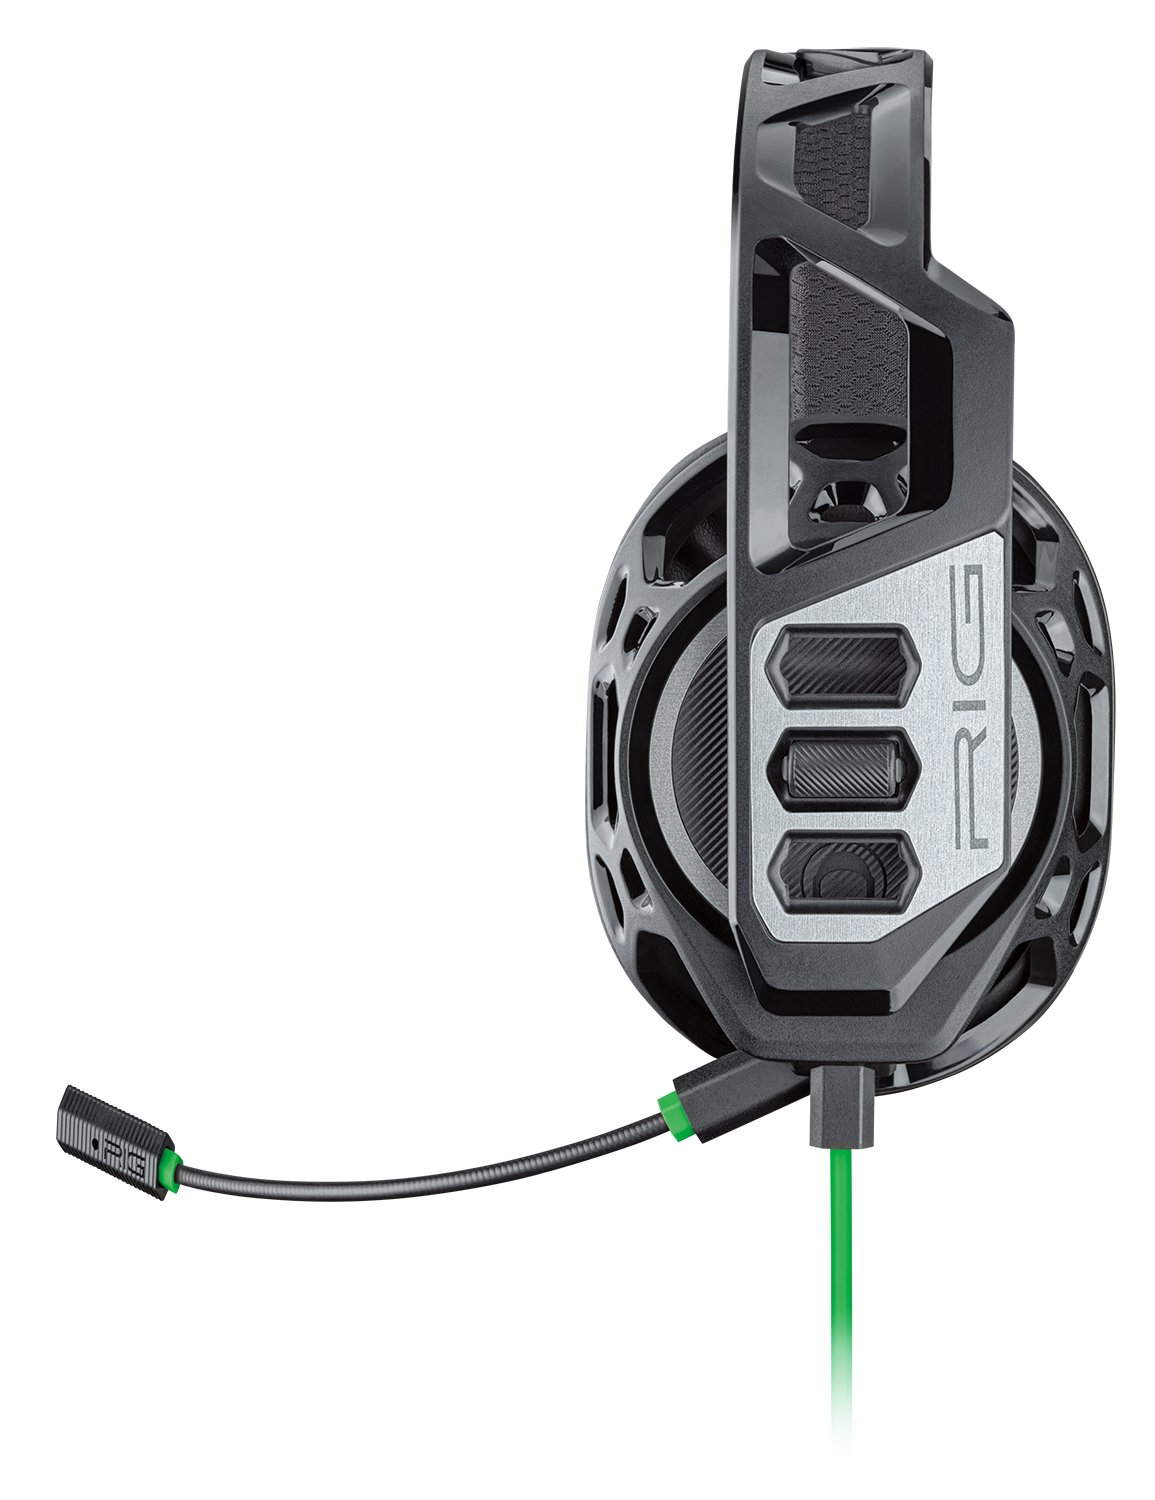 Amazon.com: Plantronics Gaming Headset, RIG 100HX Gaming Headset for Xbox One with Open Ear Full Range Chat: Computers & Accessories